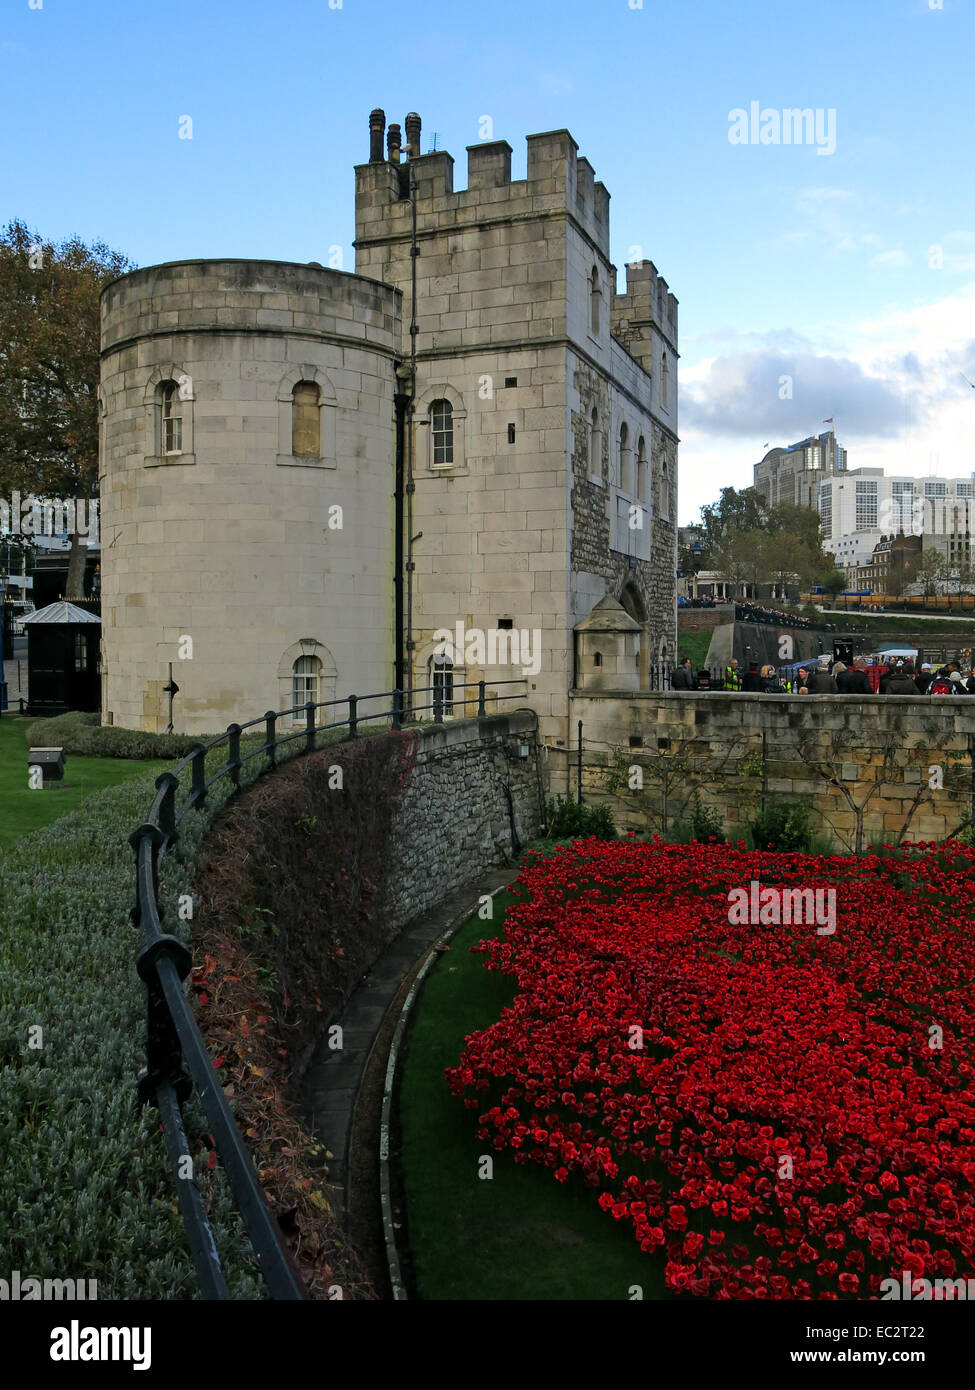 Blood Swept Lands and Seas of Red poppies, at west side of The Tower of London, England UK Stock Photo